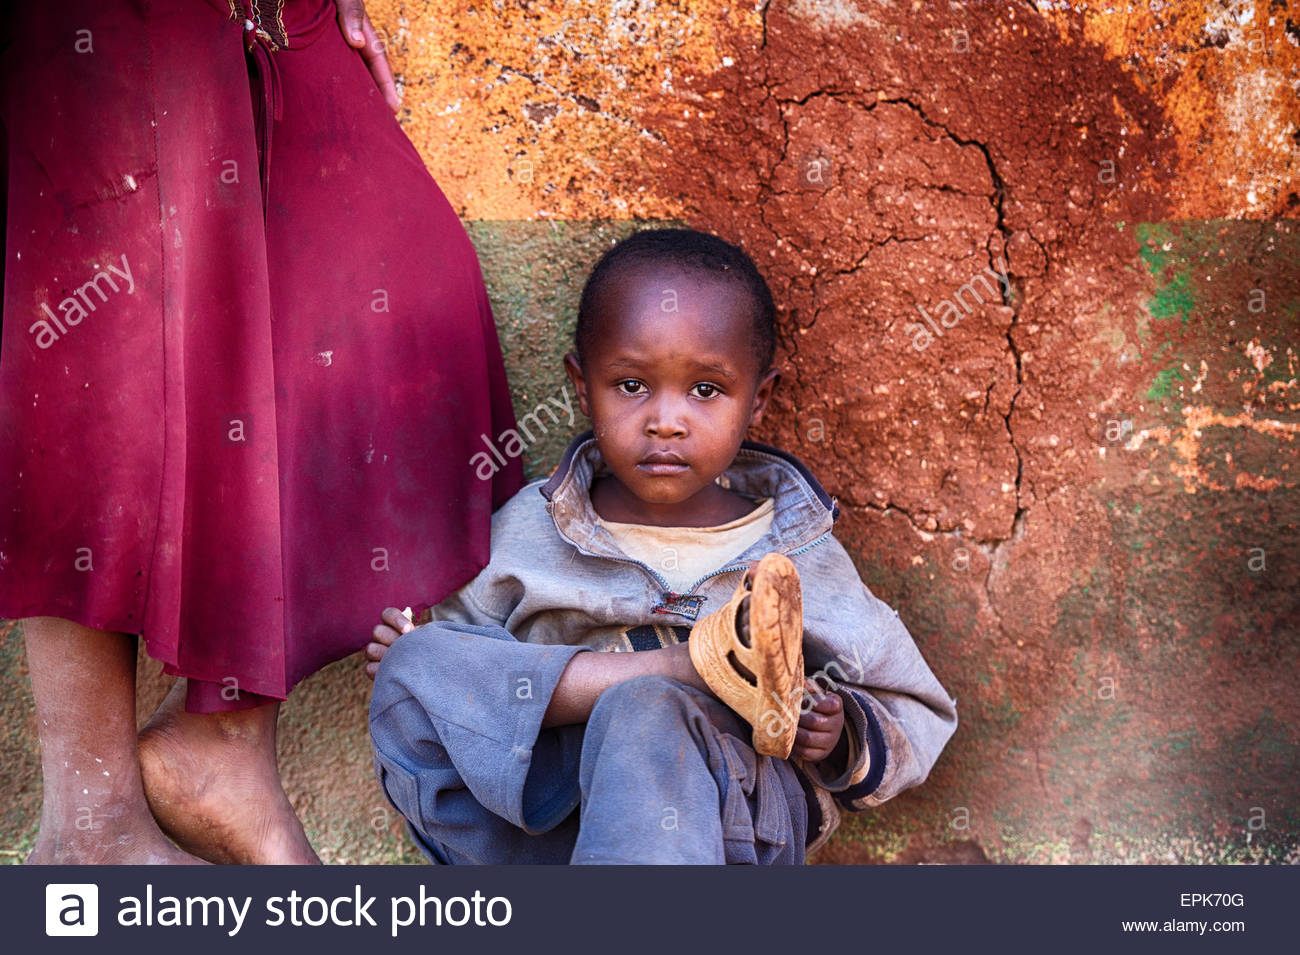 Portrait of an African child, against a textured wall. - Stock Image